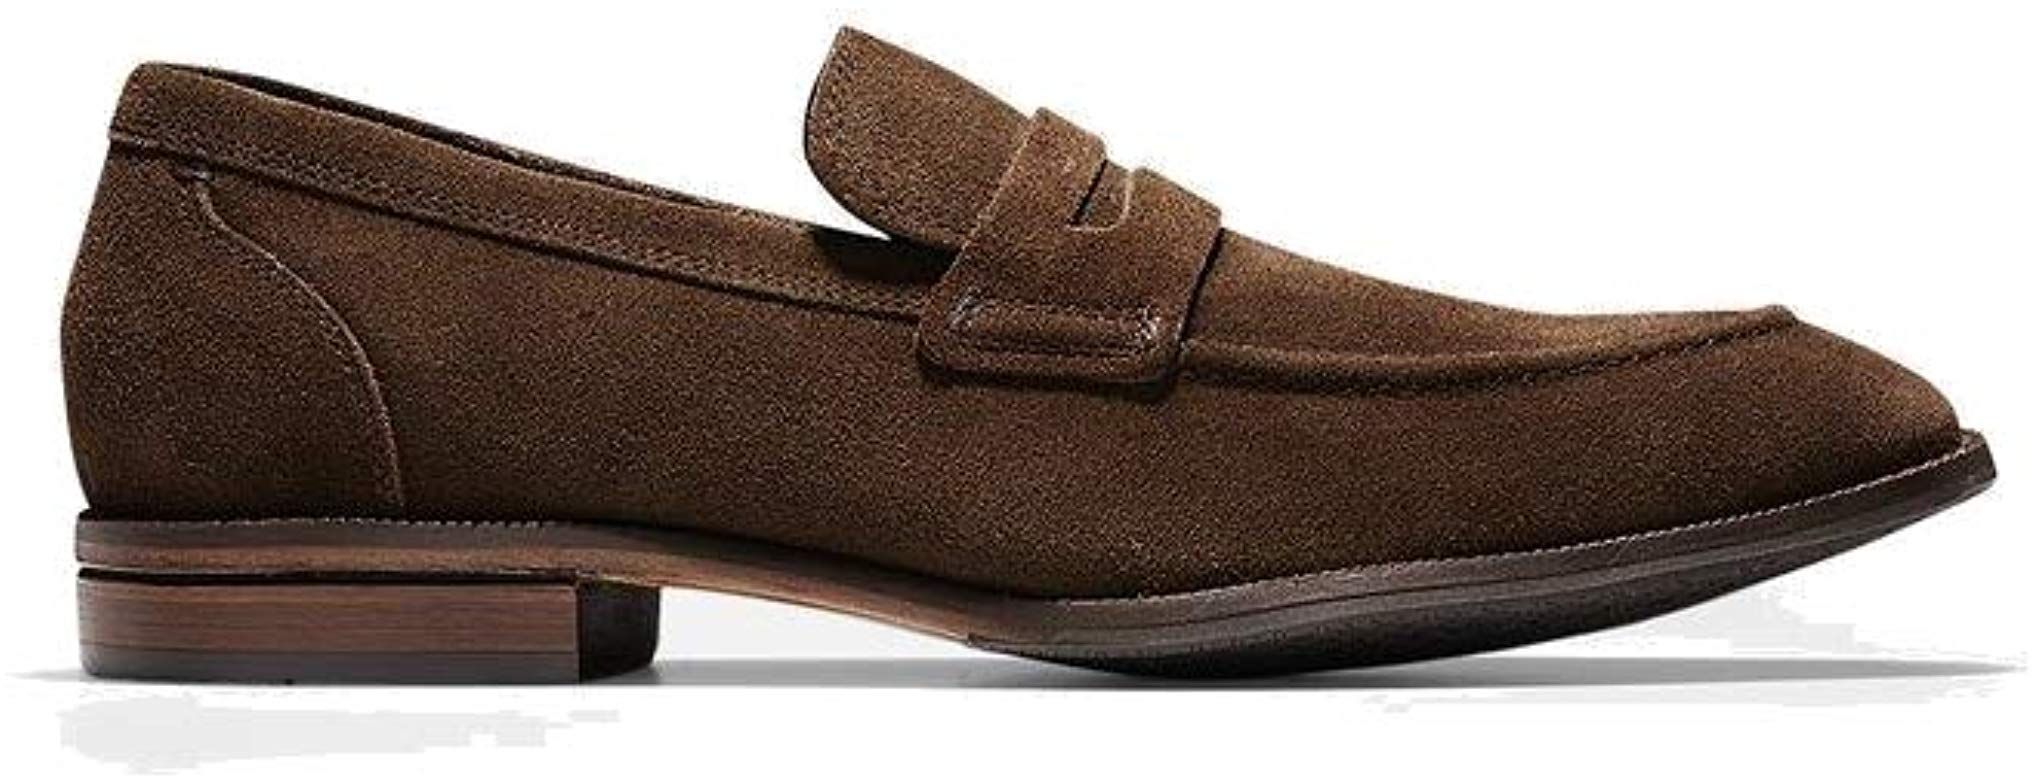 Cole haan men, Penny loafers